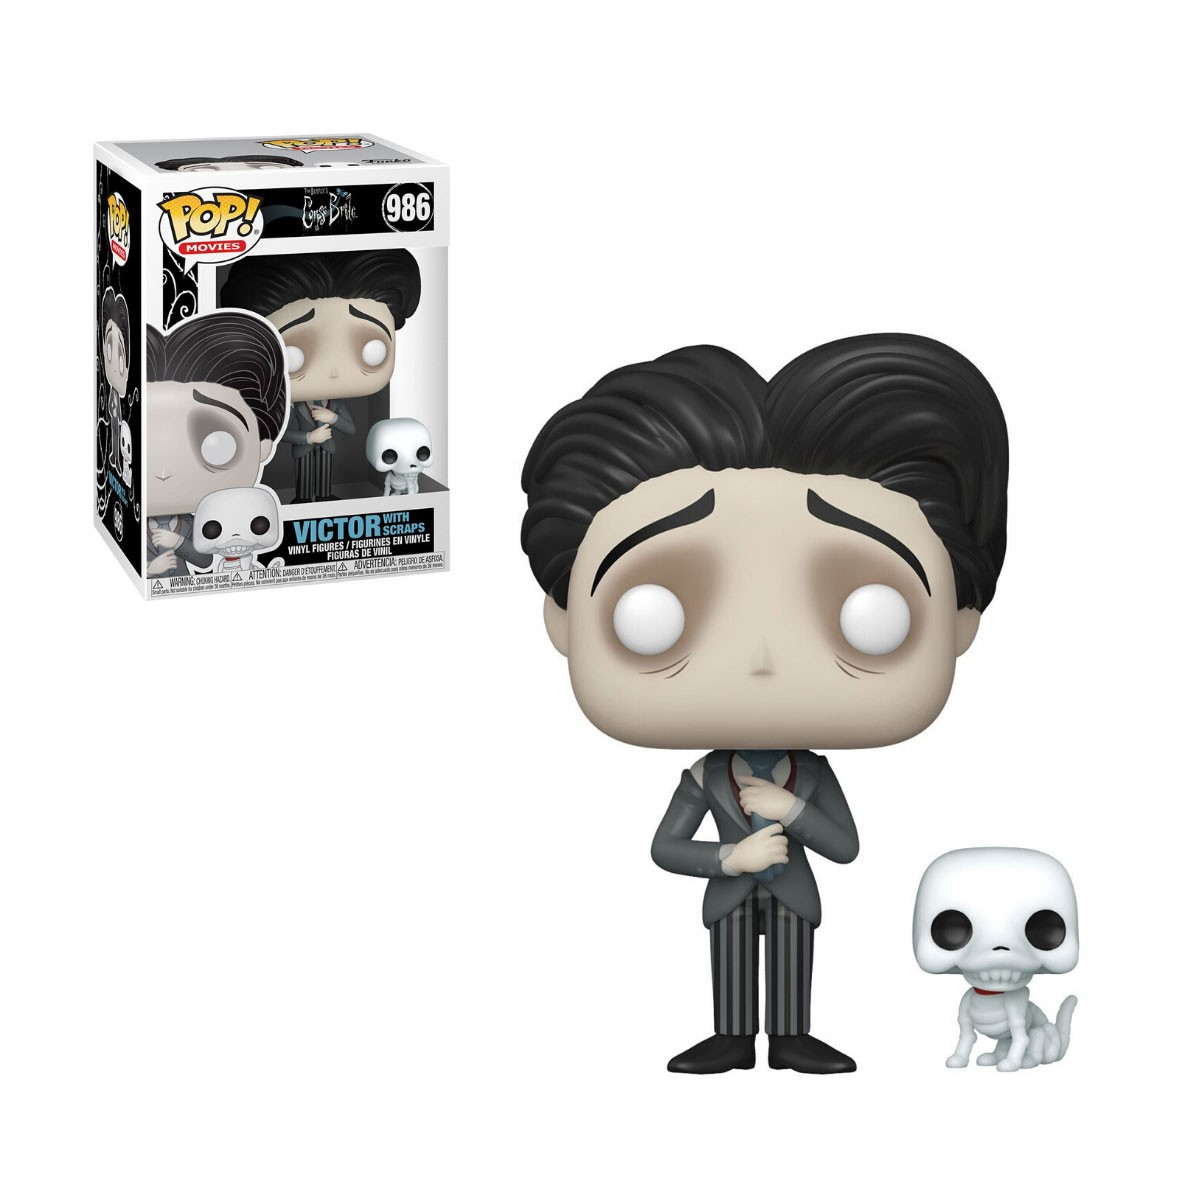 Funko Pop Victor With Scraps 986 A Noiva Cadáver